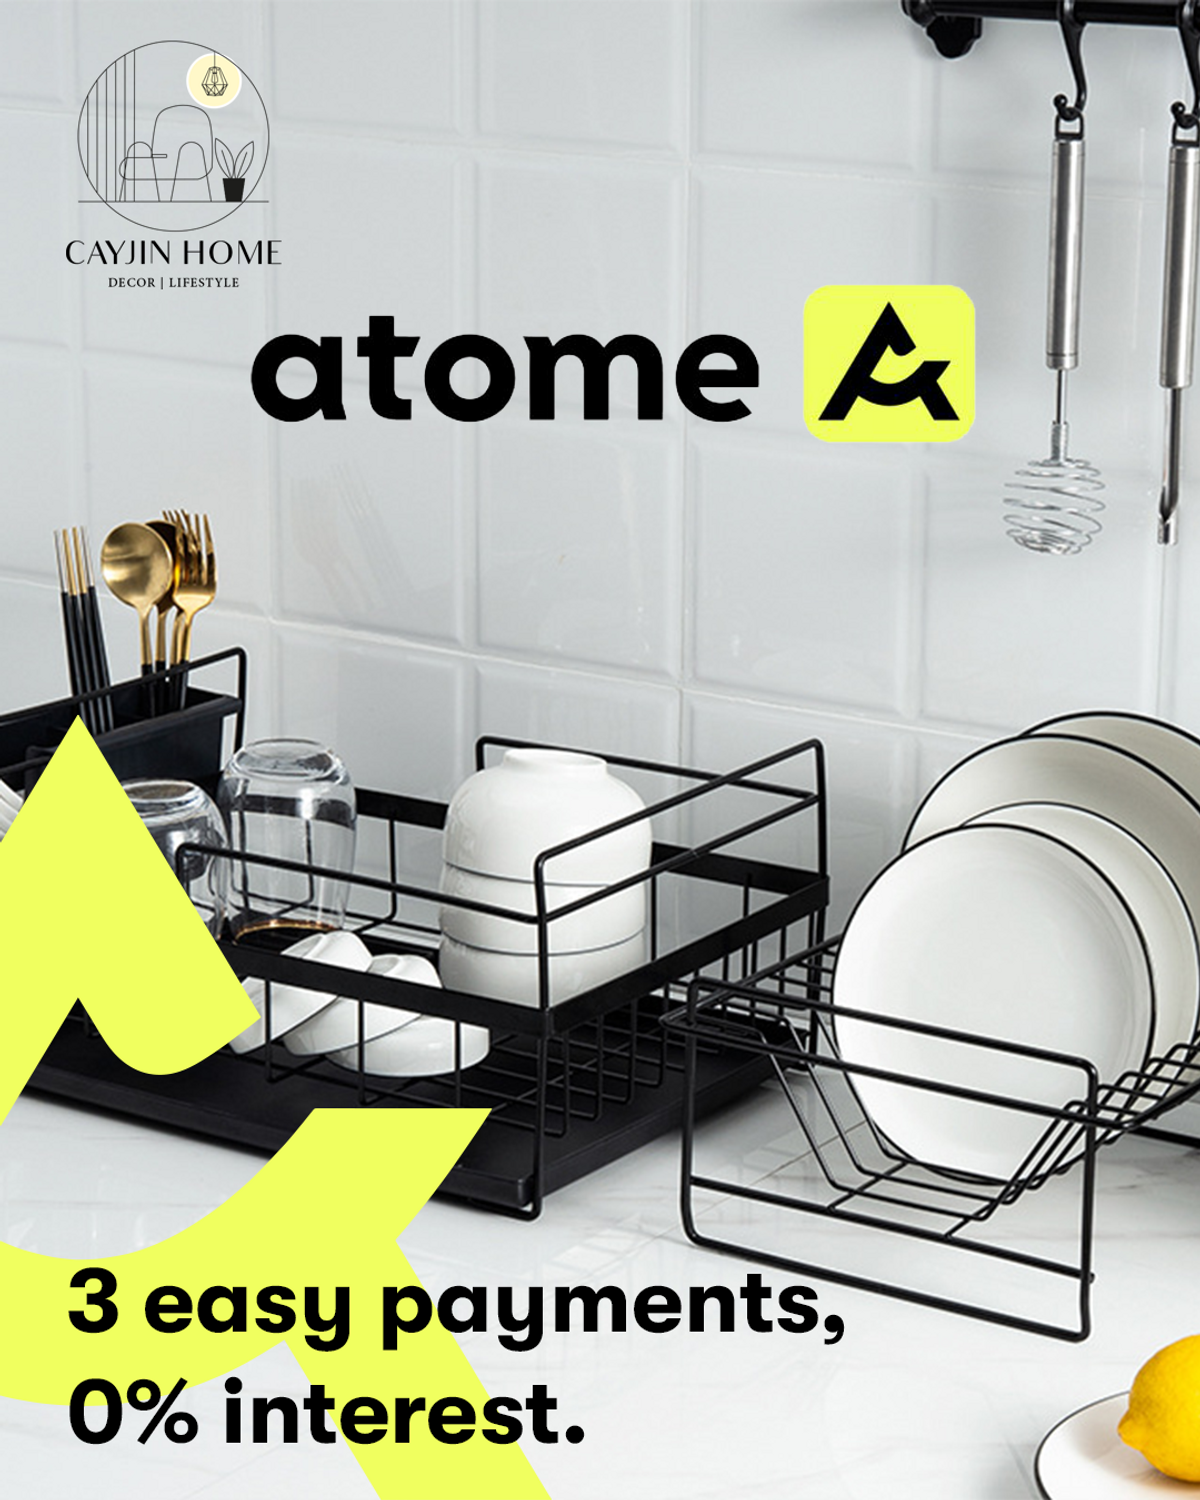 Atome - Buy Now, Pay Later